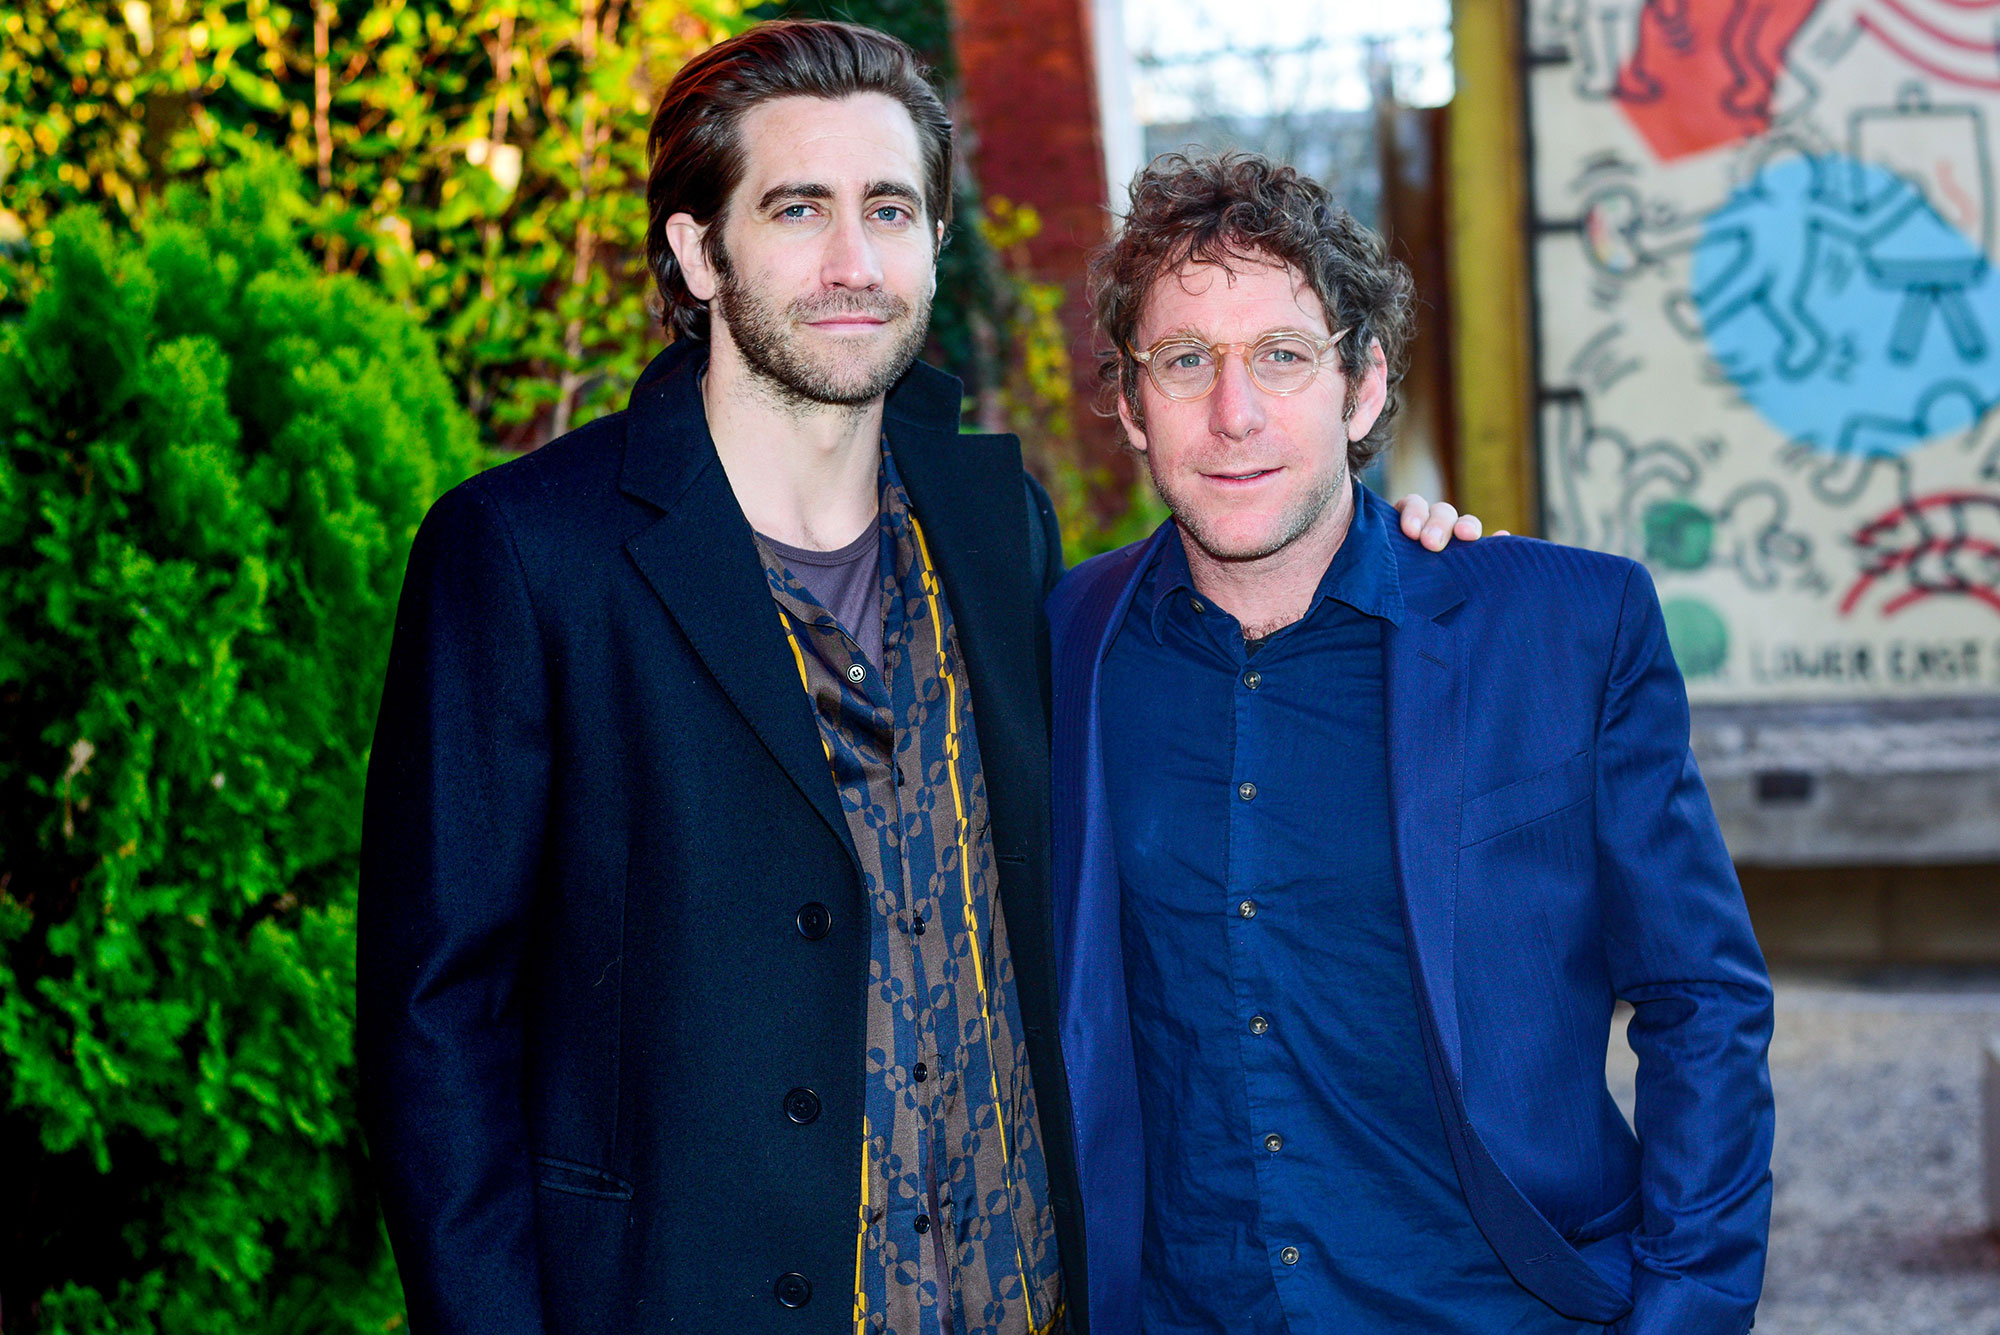 Jake Gyllenhaal, Dustin Yellin Pioneer Works Village Fete, New York, USA - 27 Apr 2019